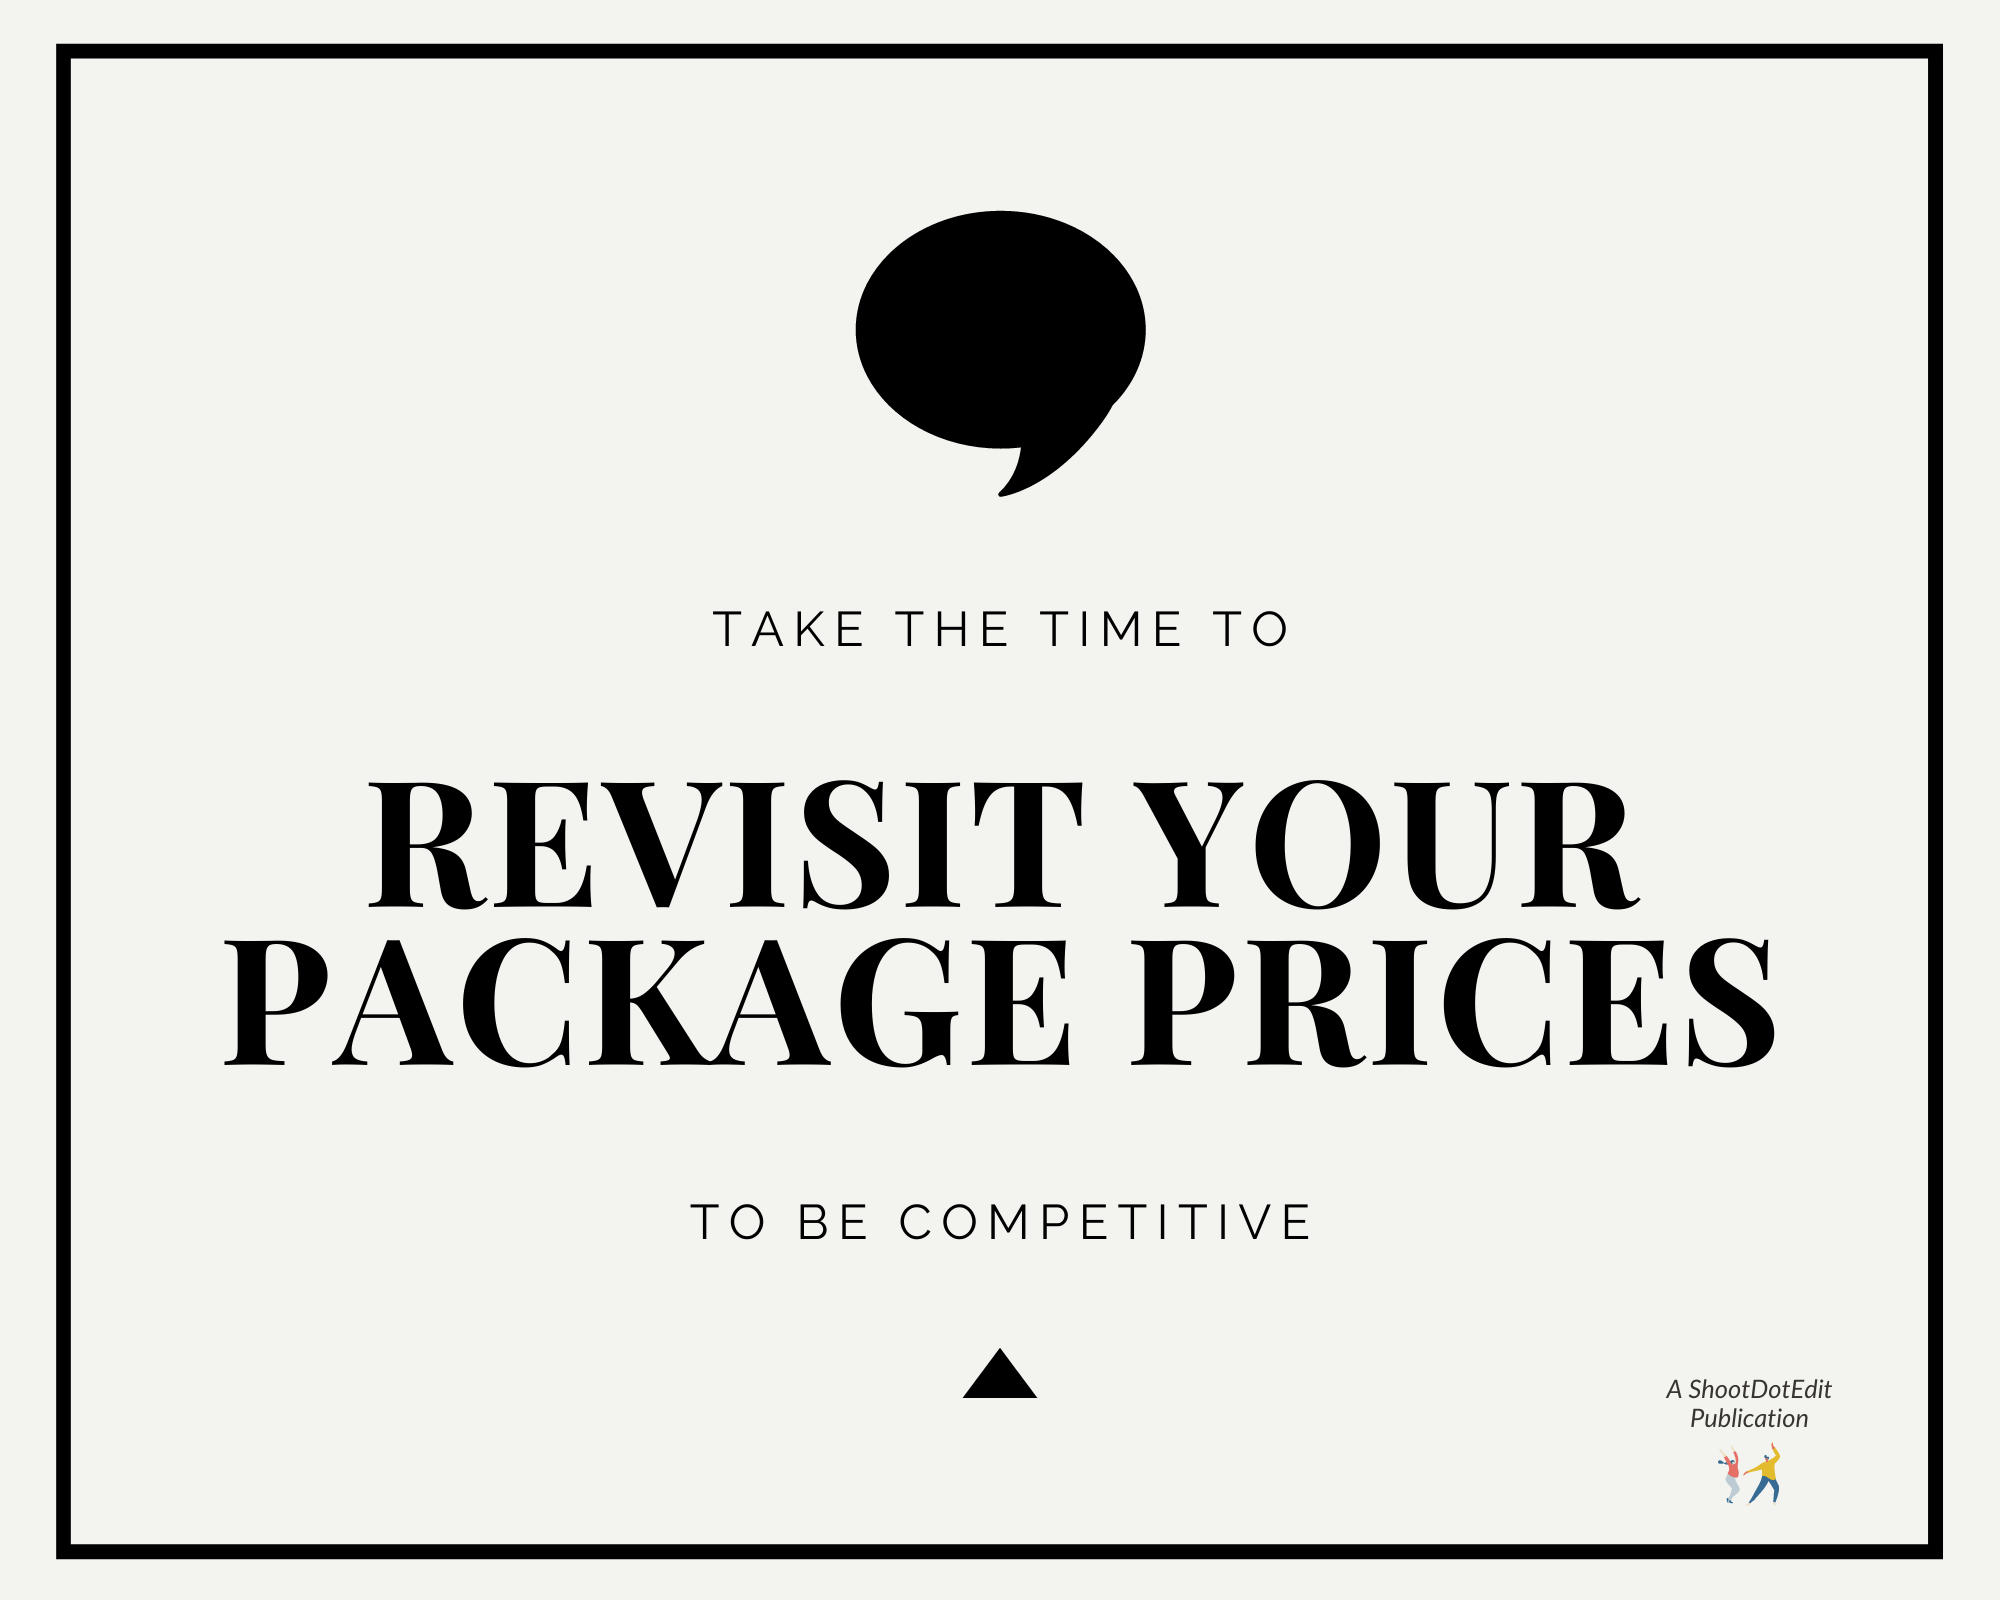 Infographic stating take the time to revisit your package prices to be competitive